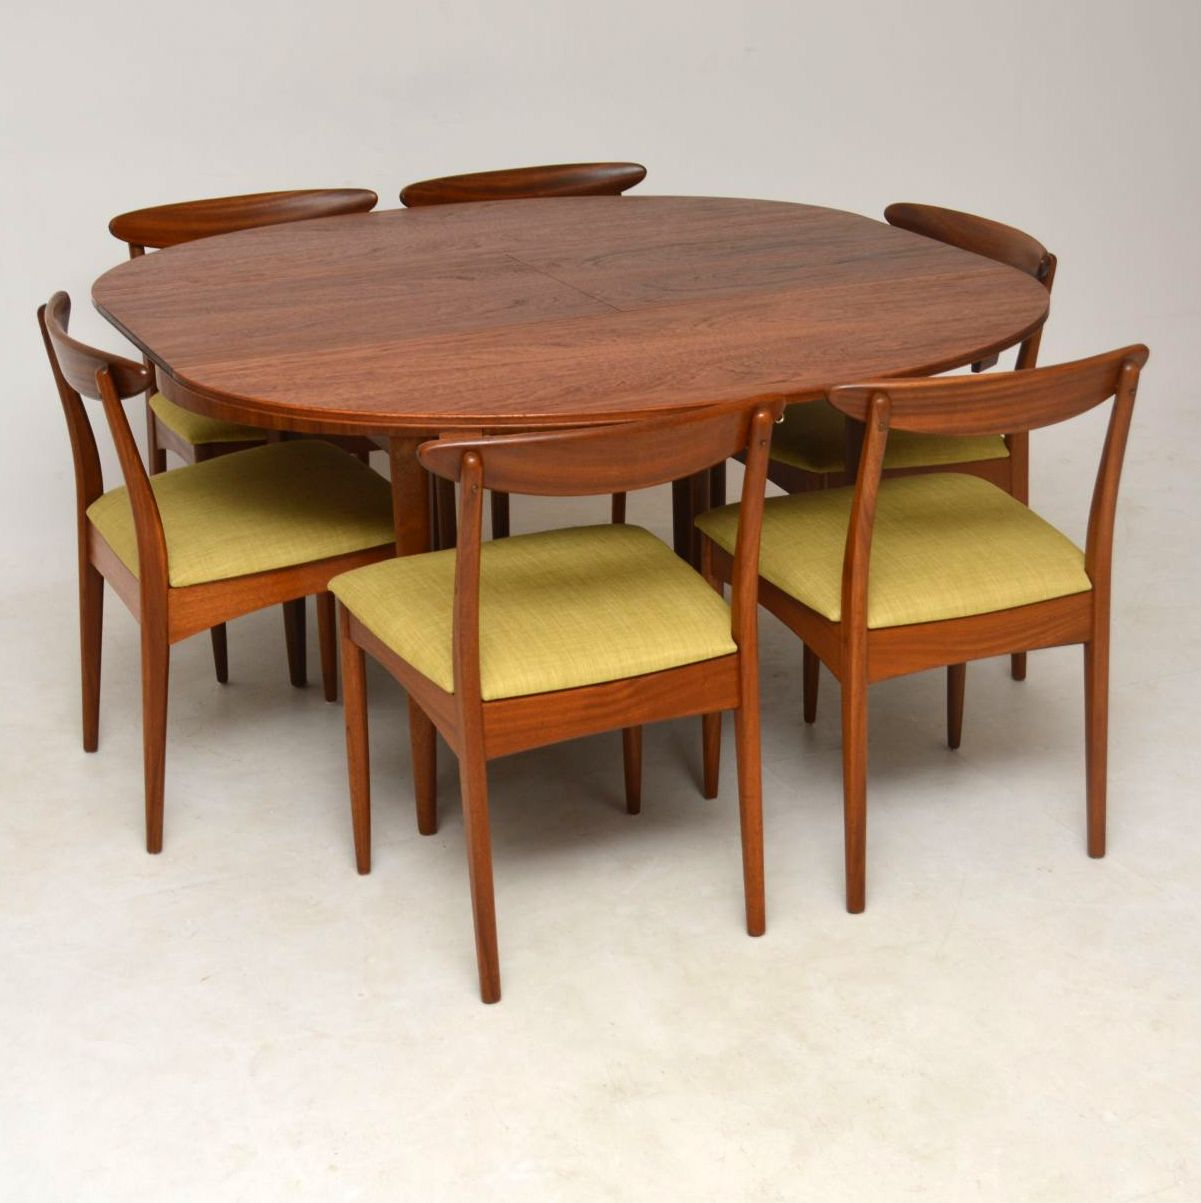 Teak Dining Room Chairs 1960 S Teak Dining Table And 6 Chairs By Greaves Thomas